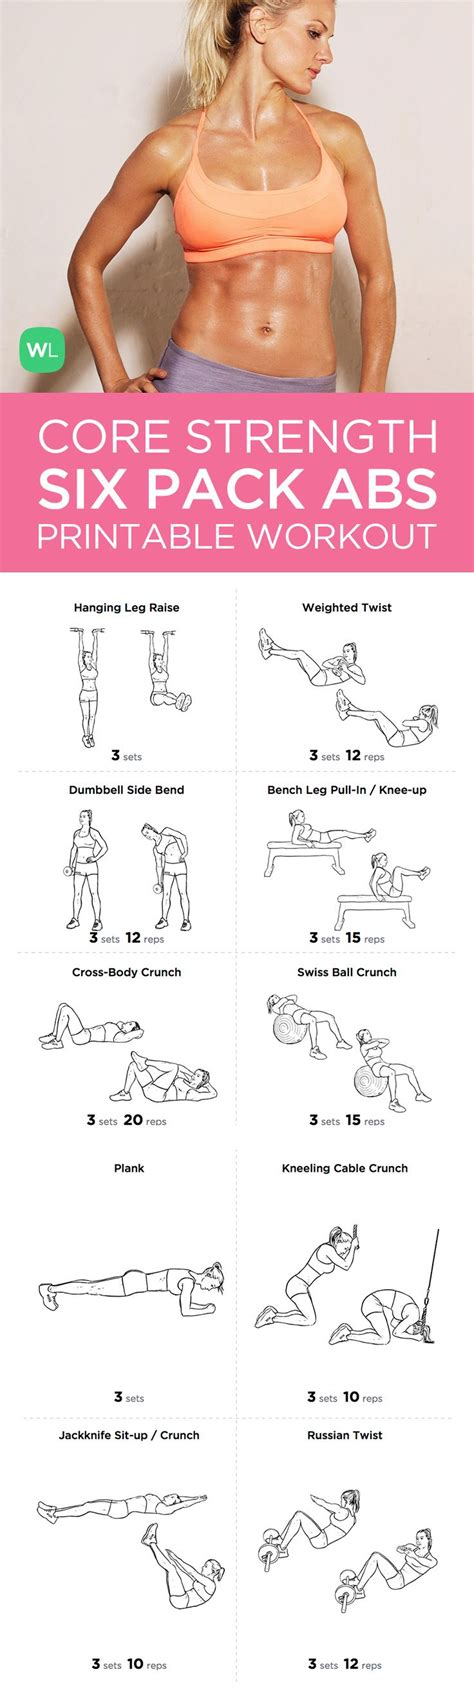 10 strength 6 pack abs exercise routine